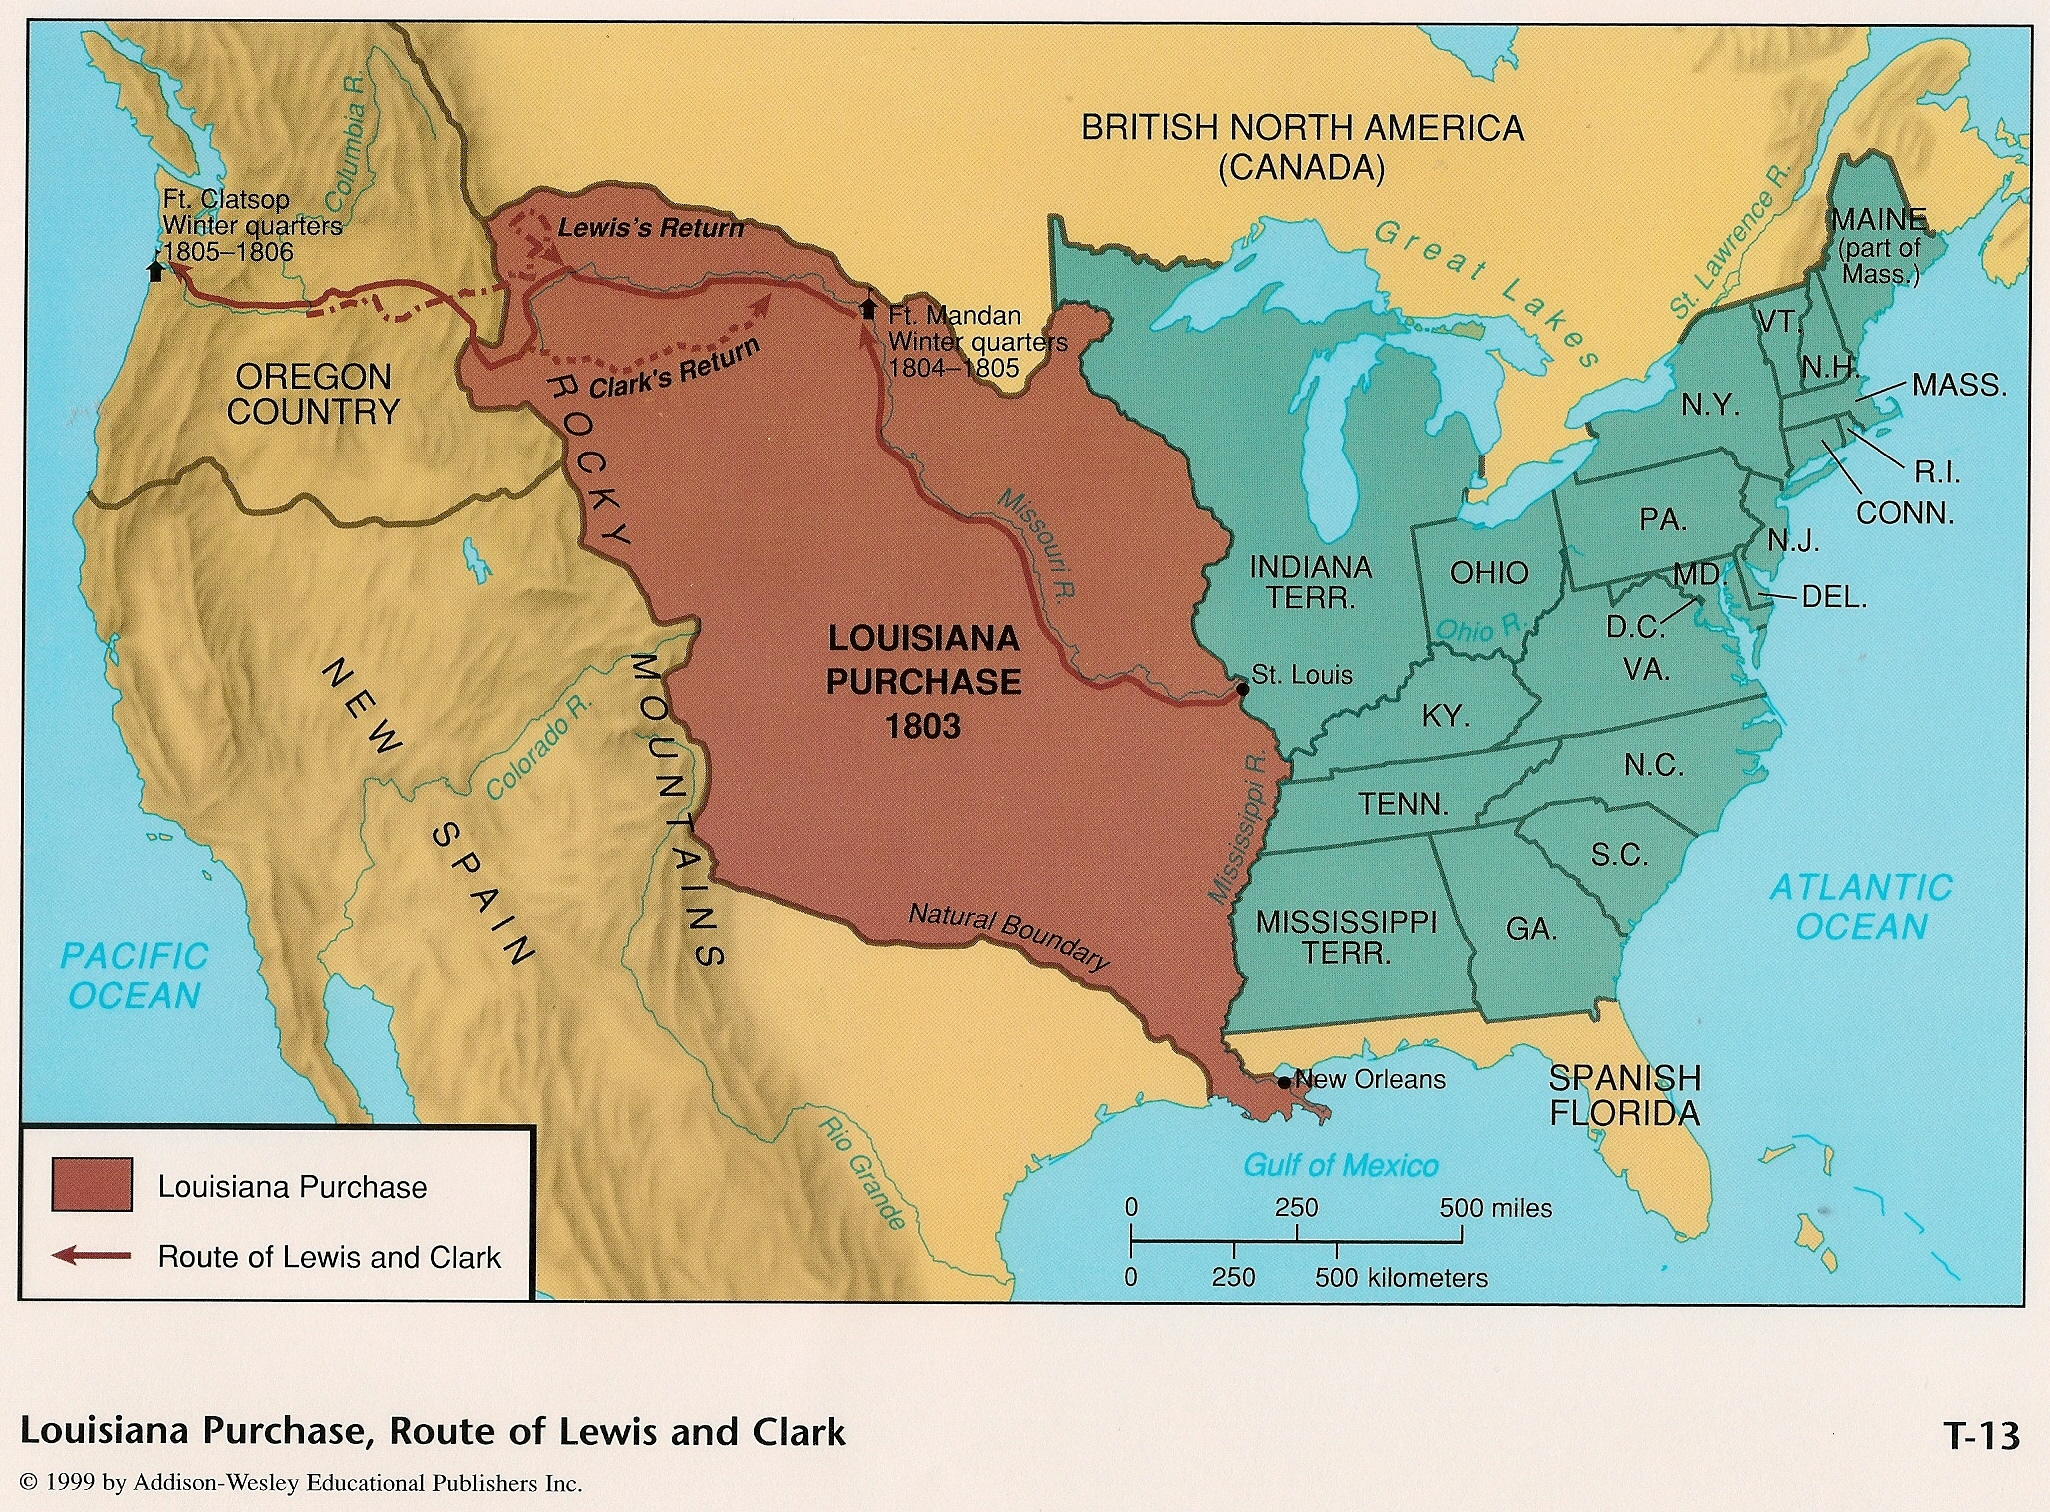 essay questions about the louisiana purchase Student(background(essay decisionhmaking,(reviewthe(documents(provided(and(answer(the(question:(was(president(thomasjefferson(right(to(purchase(the(louisiana.